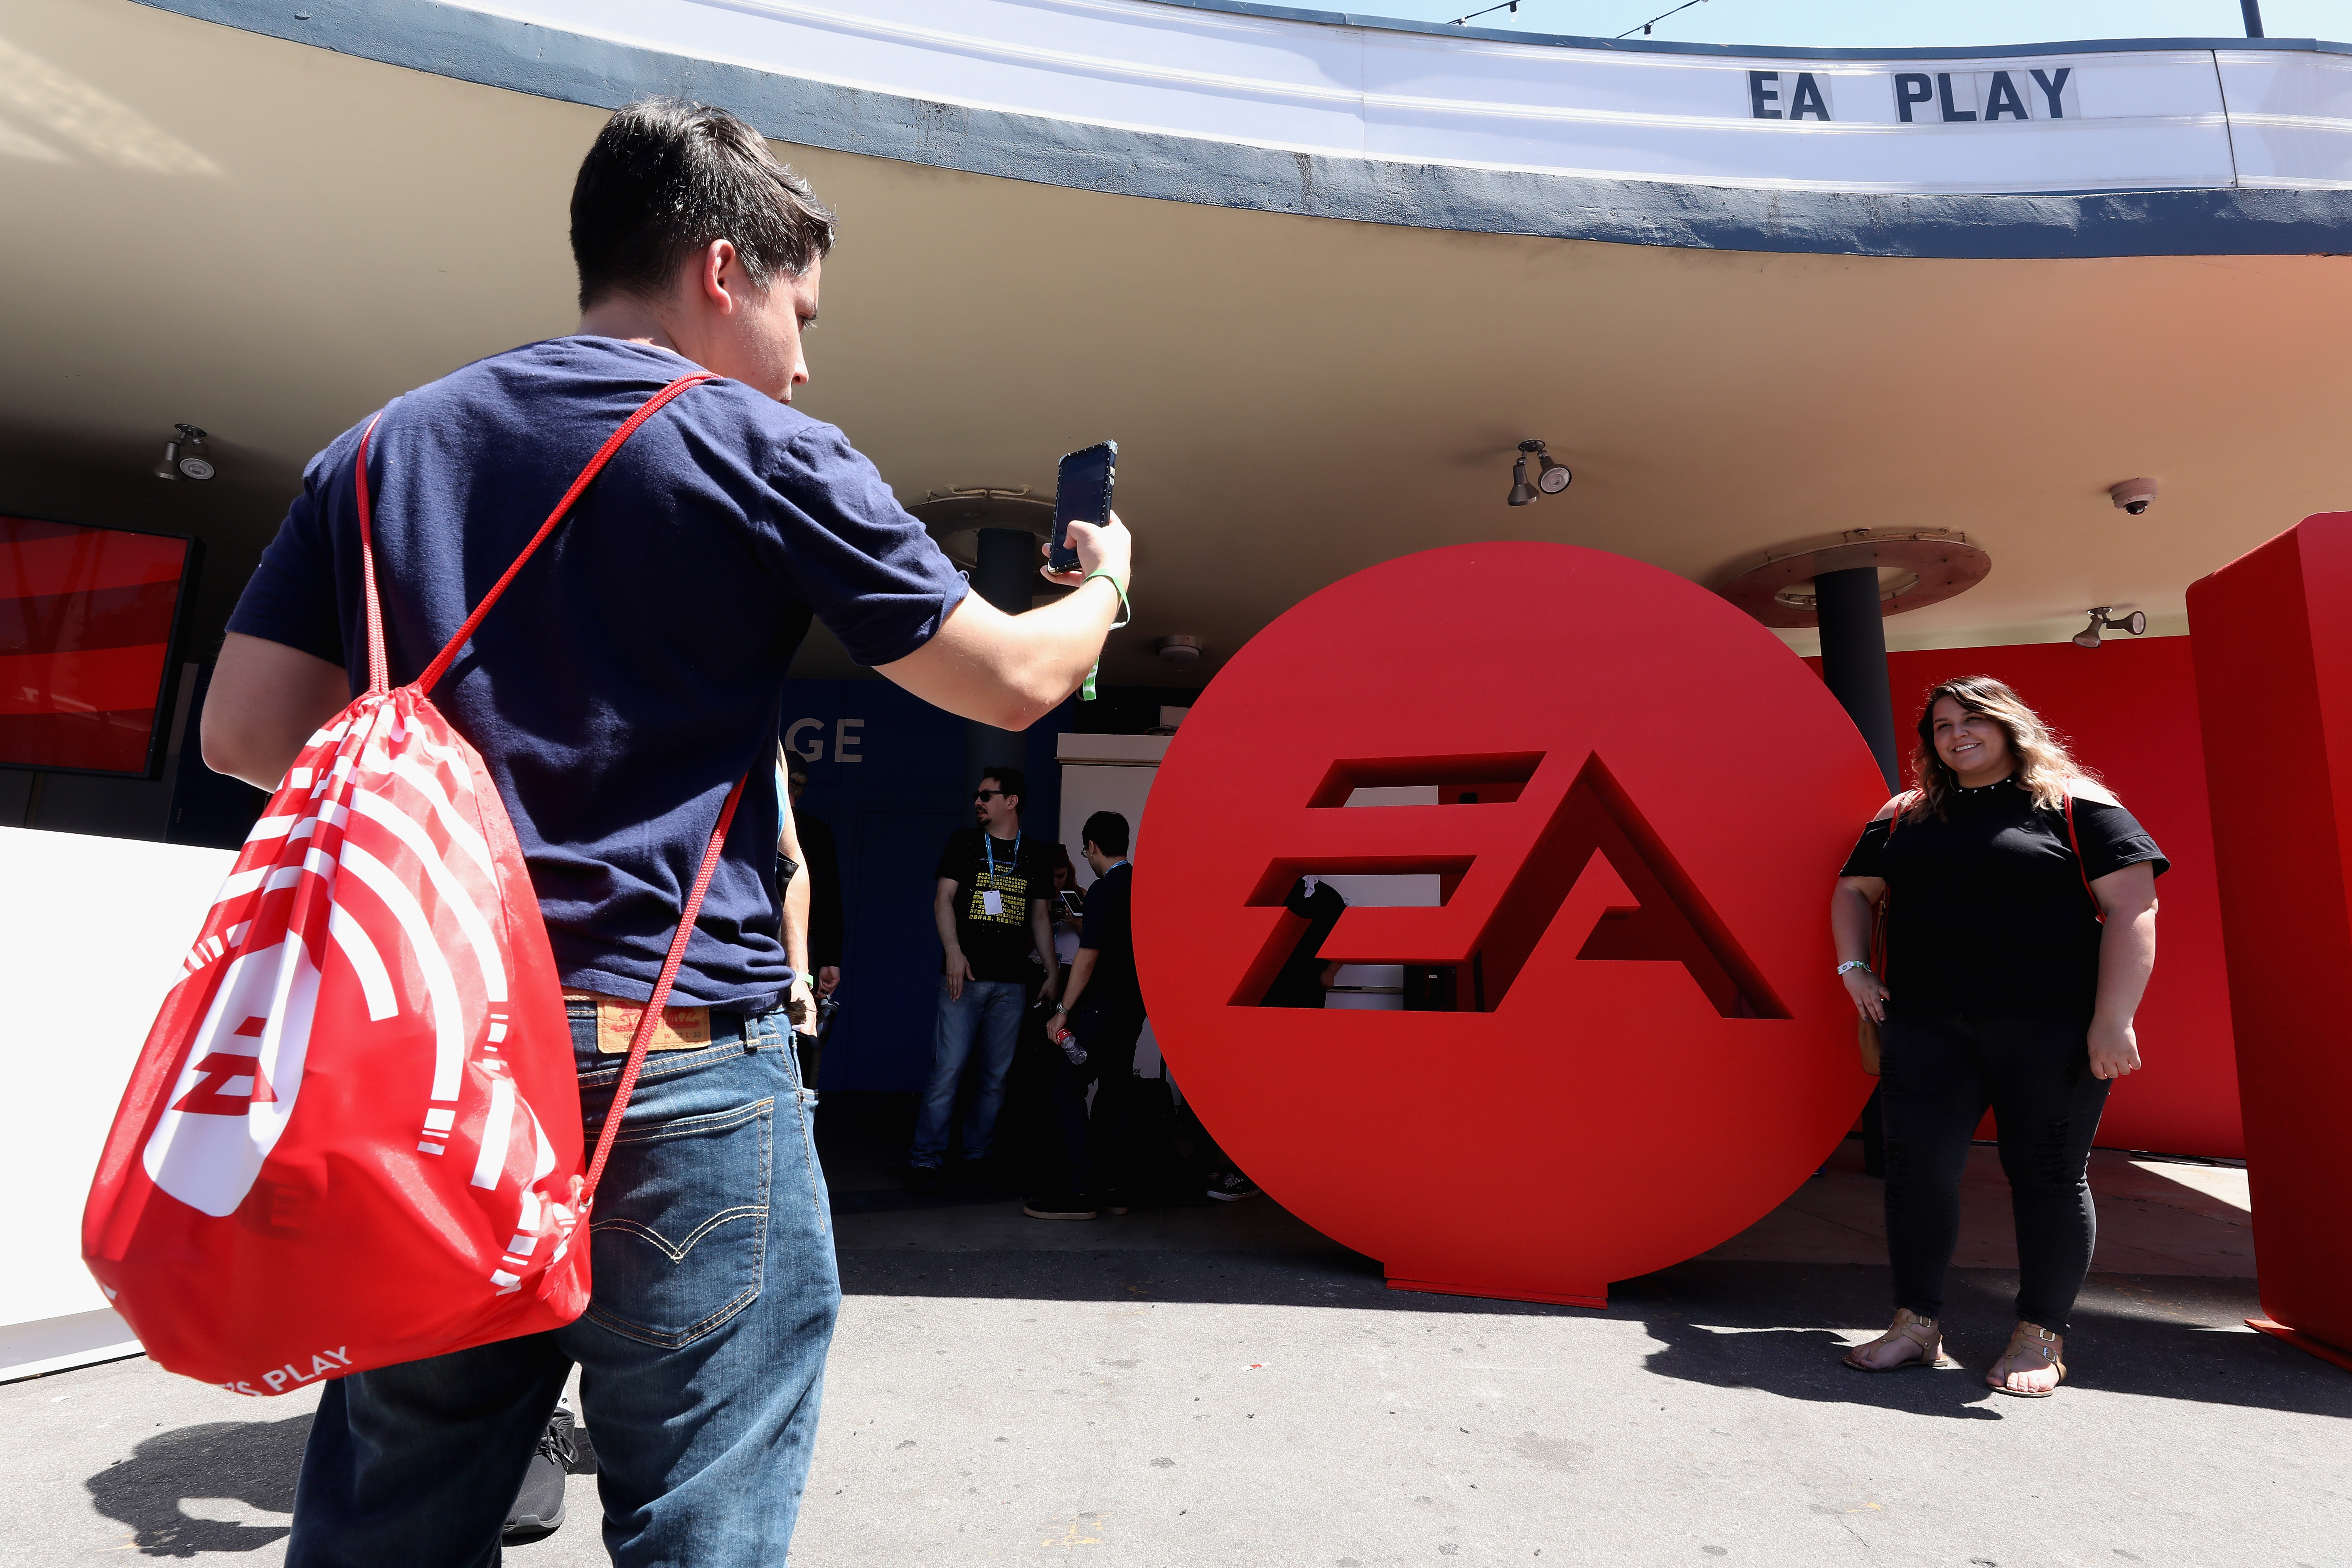 Electronic Arts Showcases Its New Games At E3 Event In Los Angeles